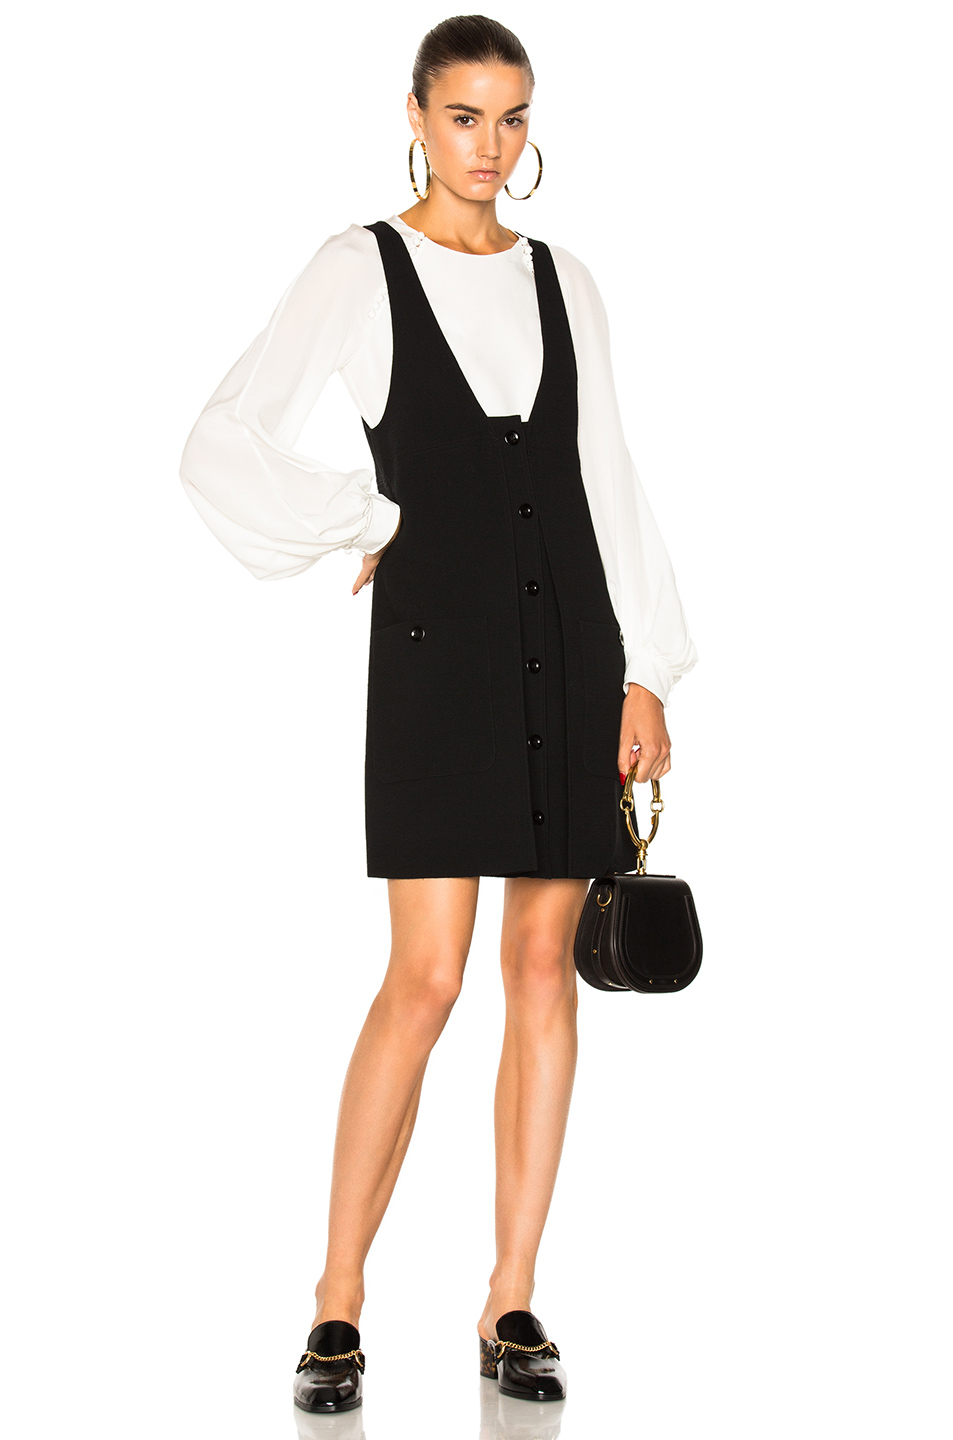 Chloe Wool Crepe Button Front Dress in Black